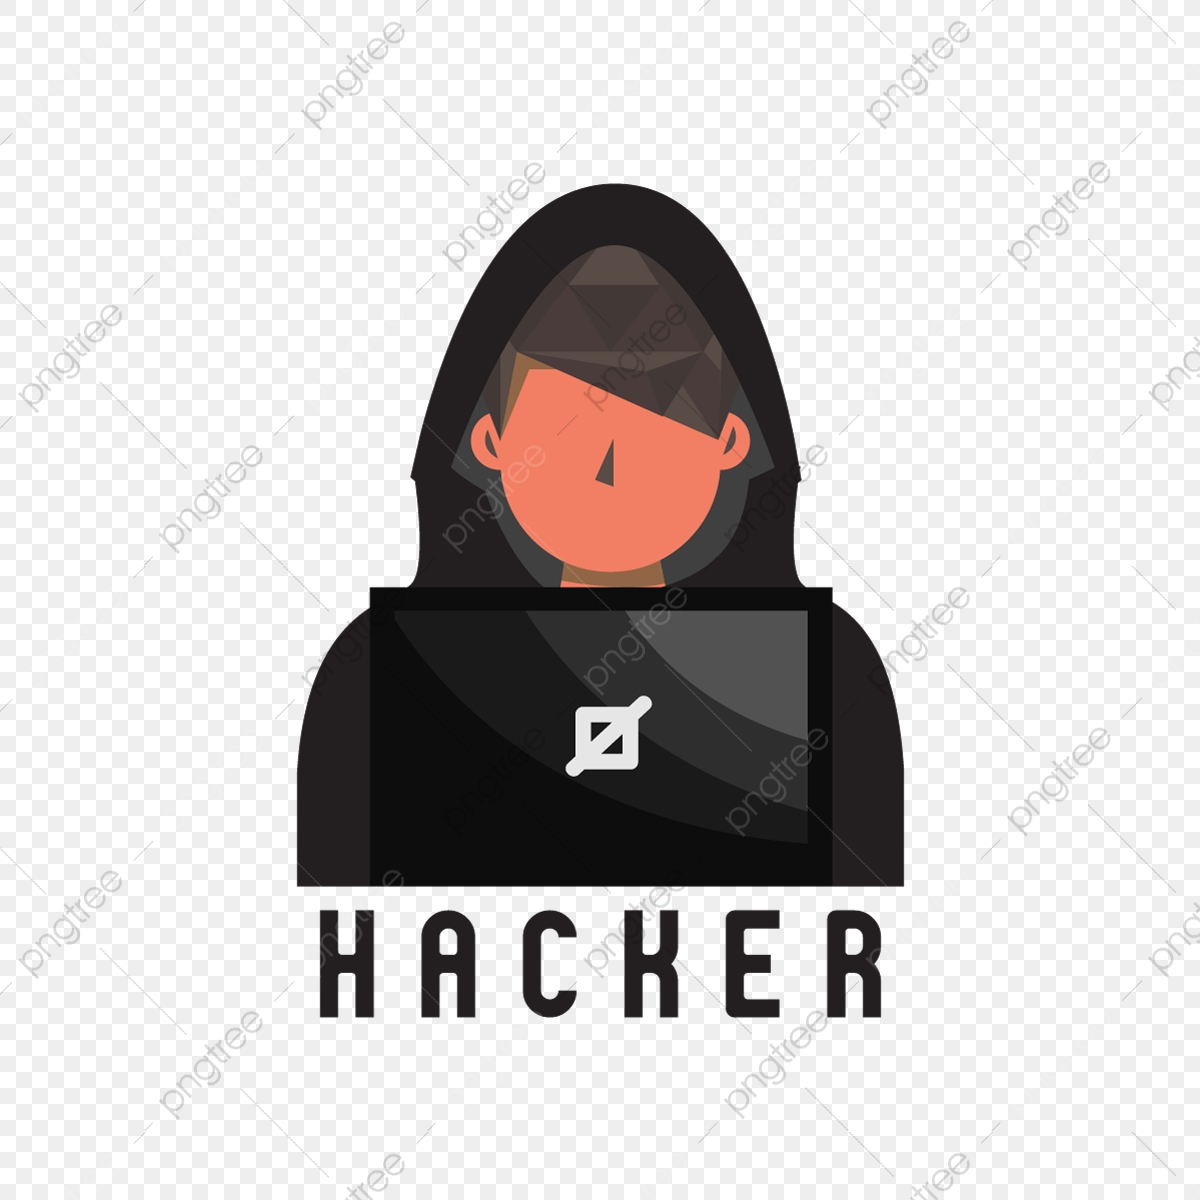 hacker vector illustration design hacker mask computer png and vector with transparent background for free download https pngtree com freepng hacker vector illustration design 5391063 html